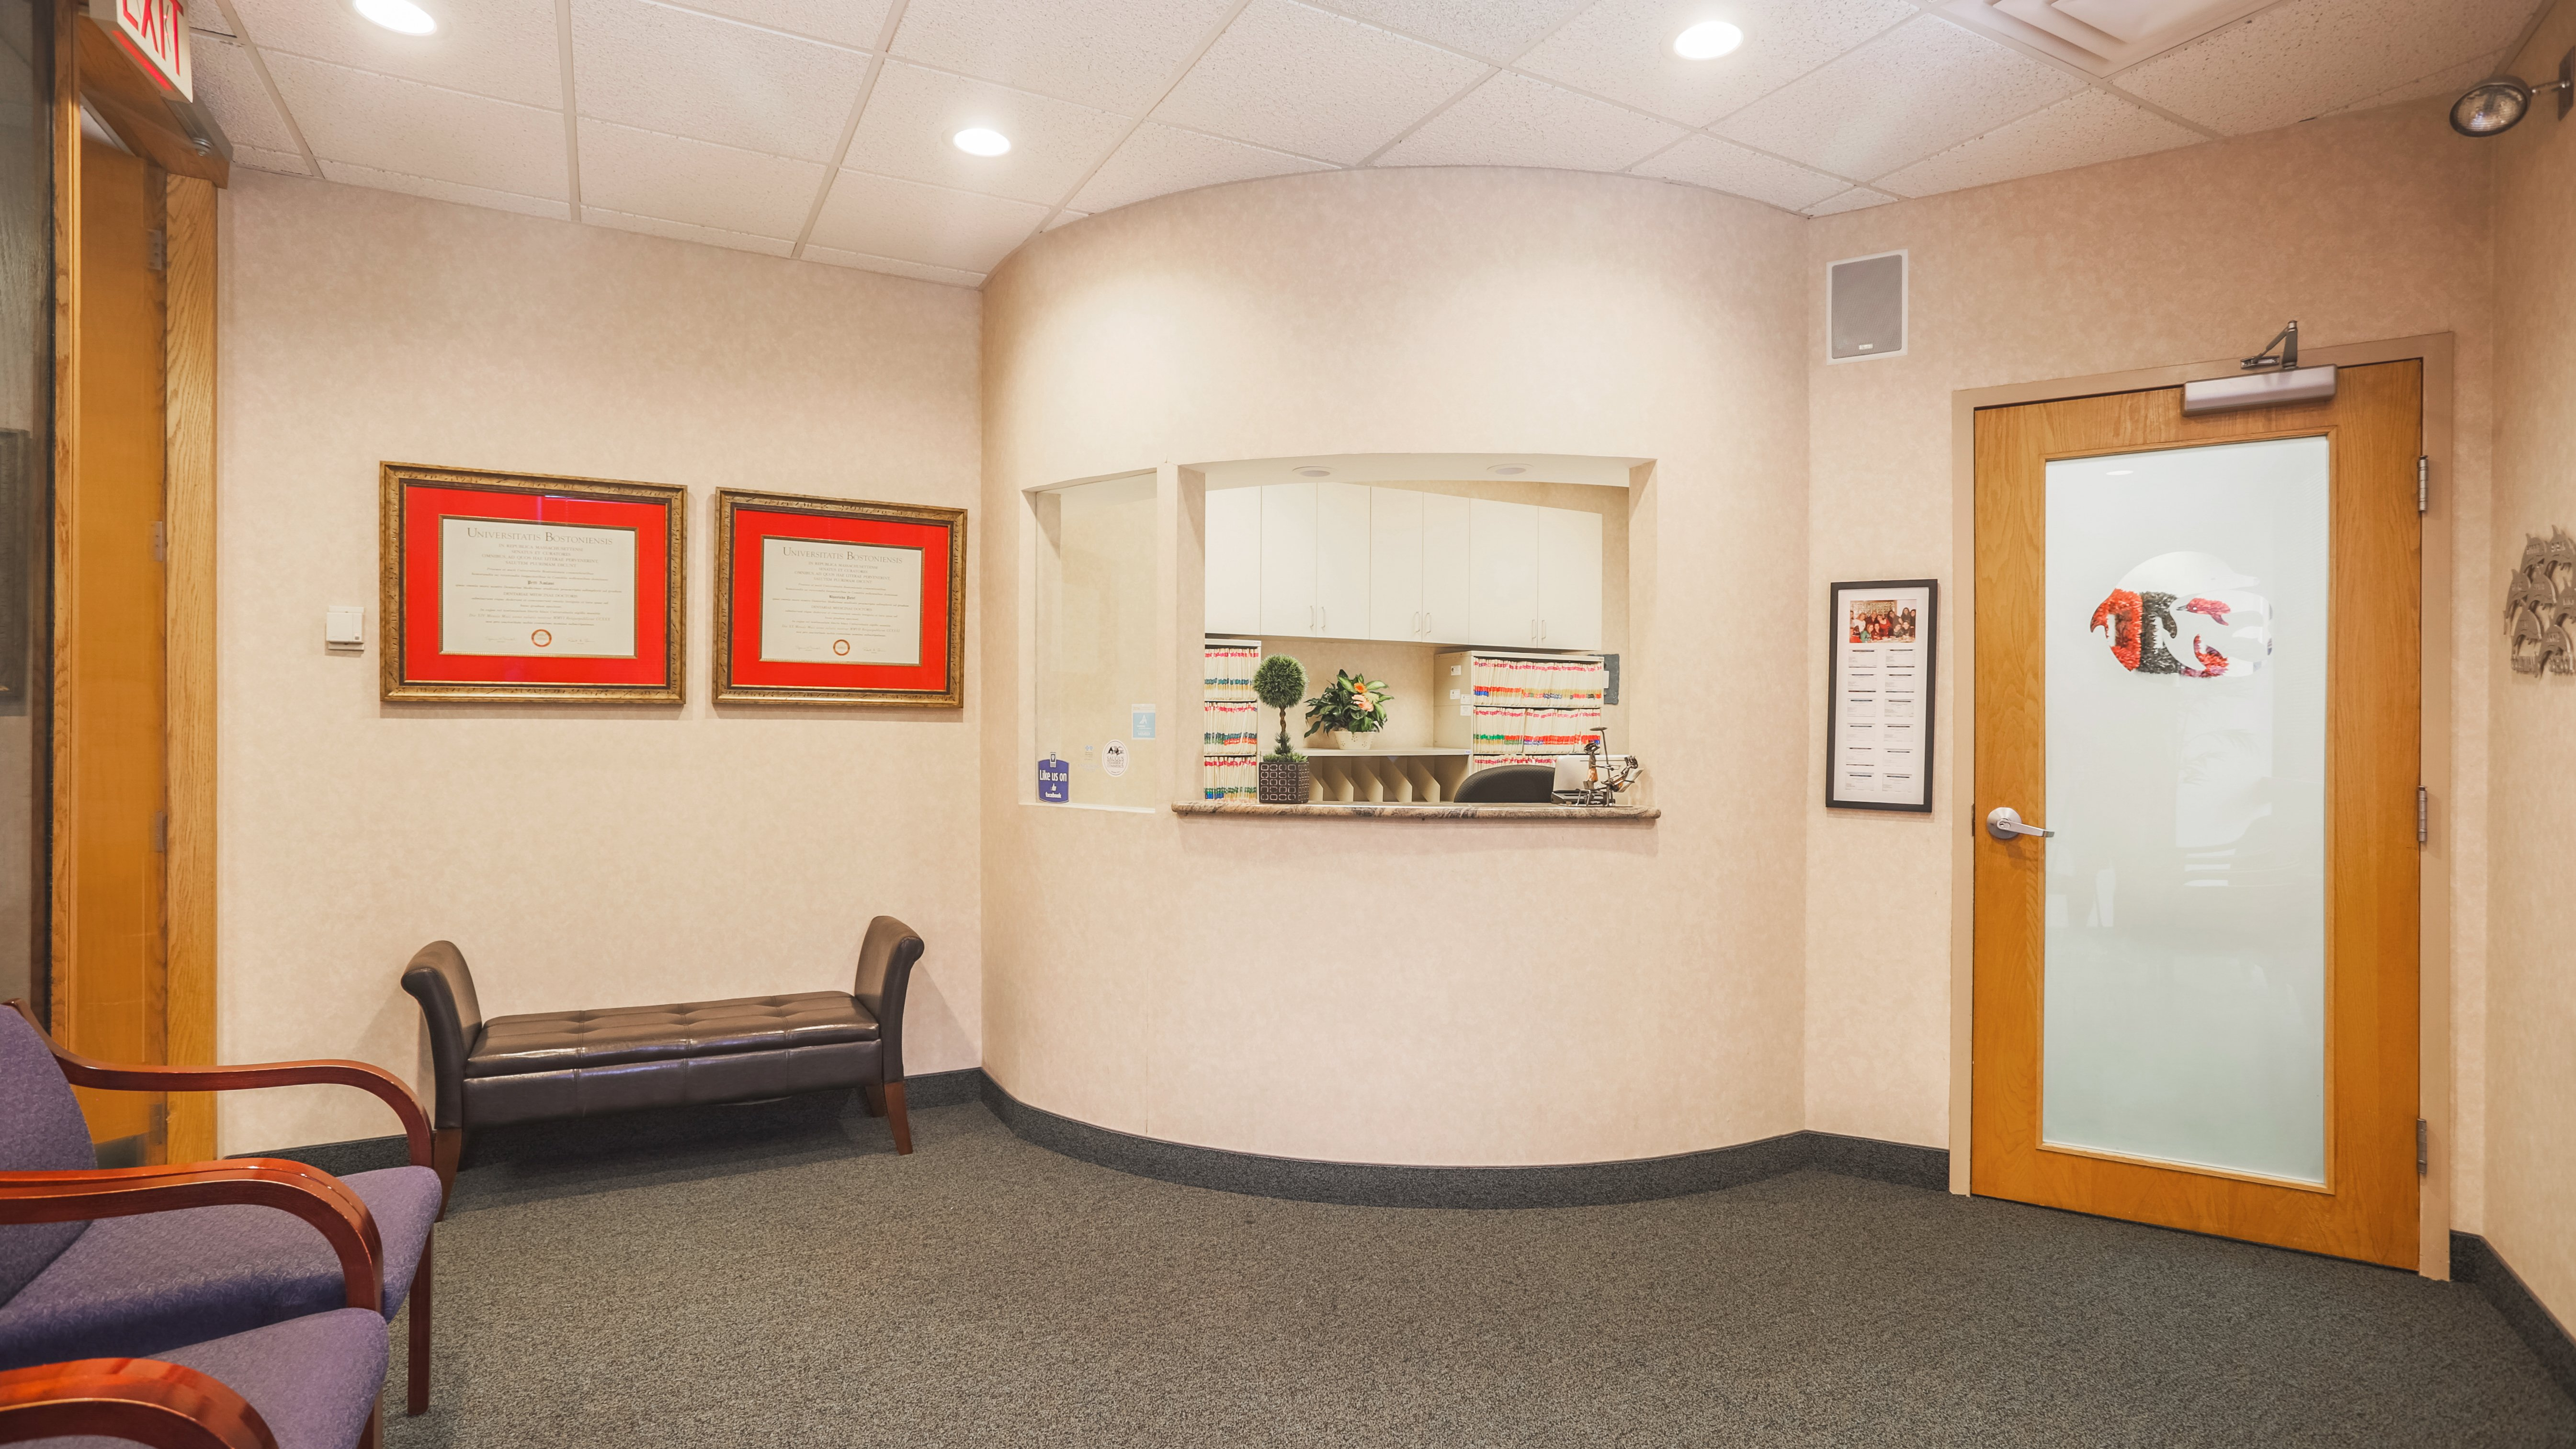 Boston North Dental Waiting Area Saugus, MA